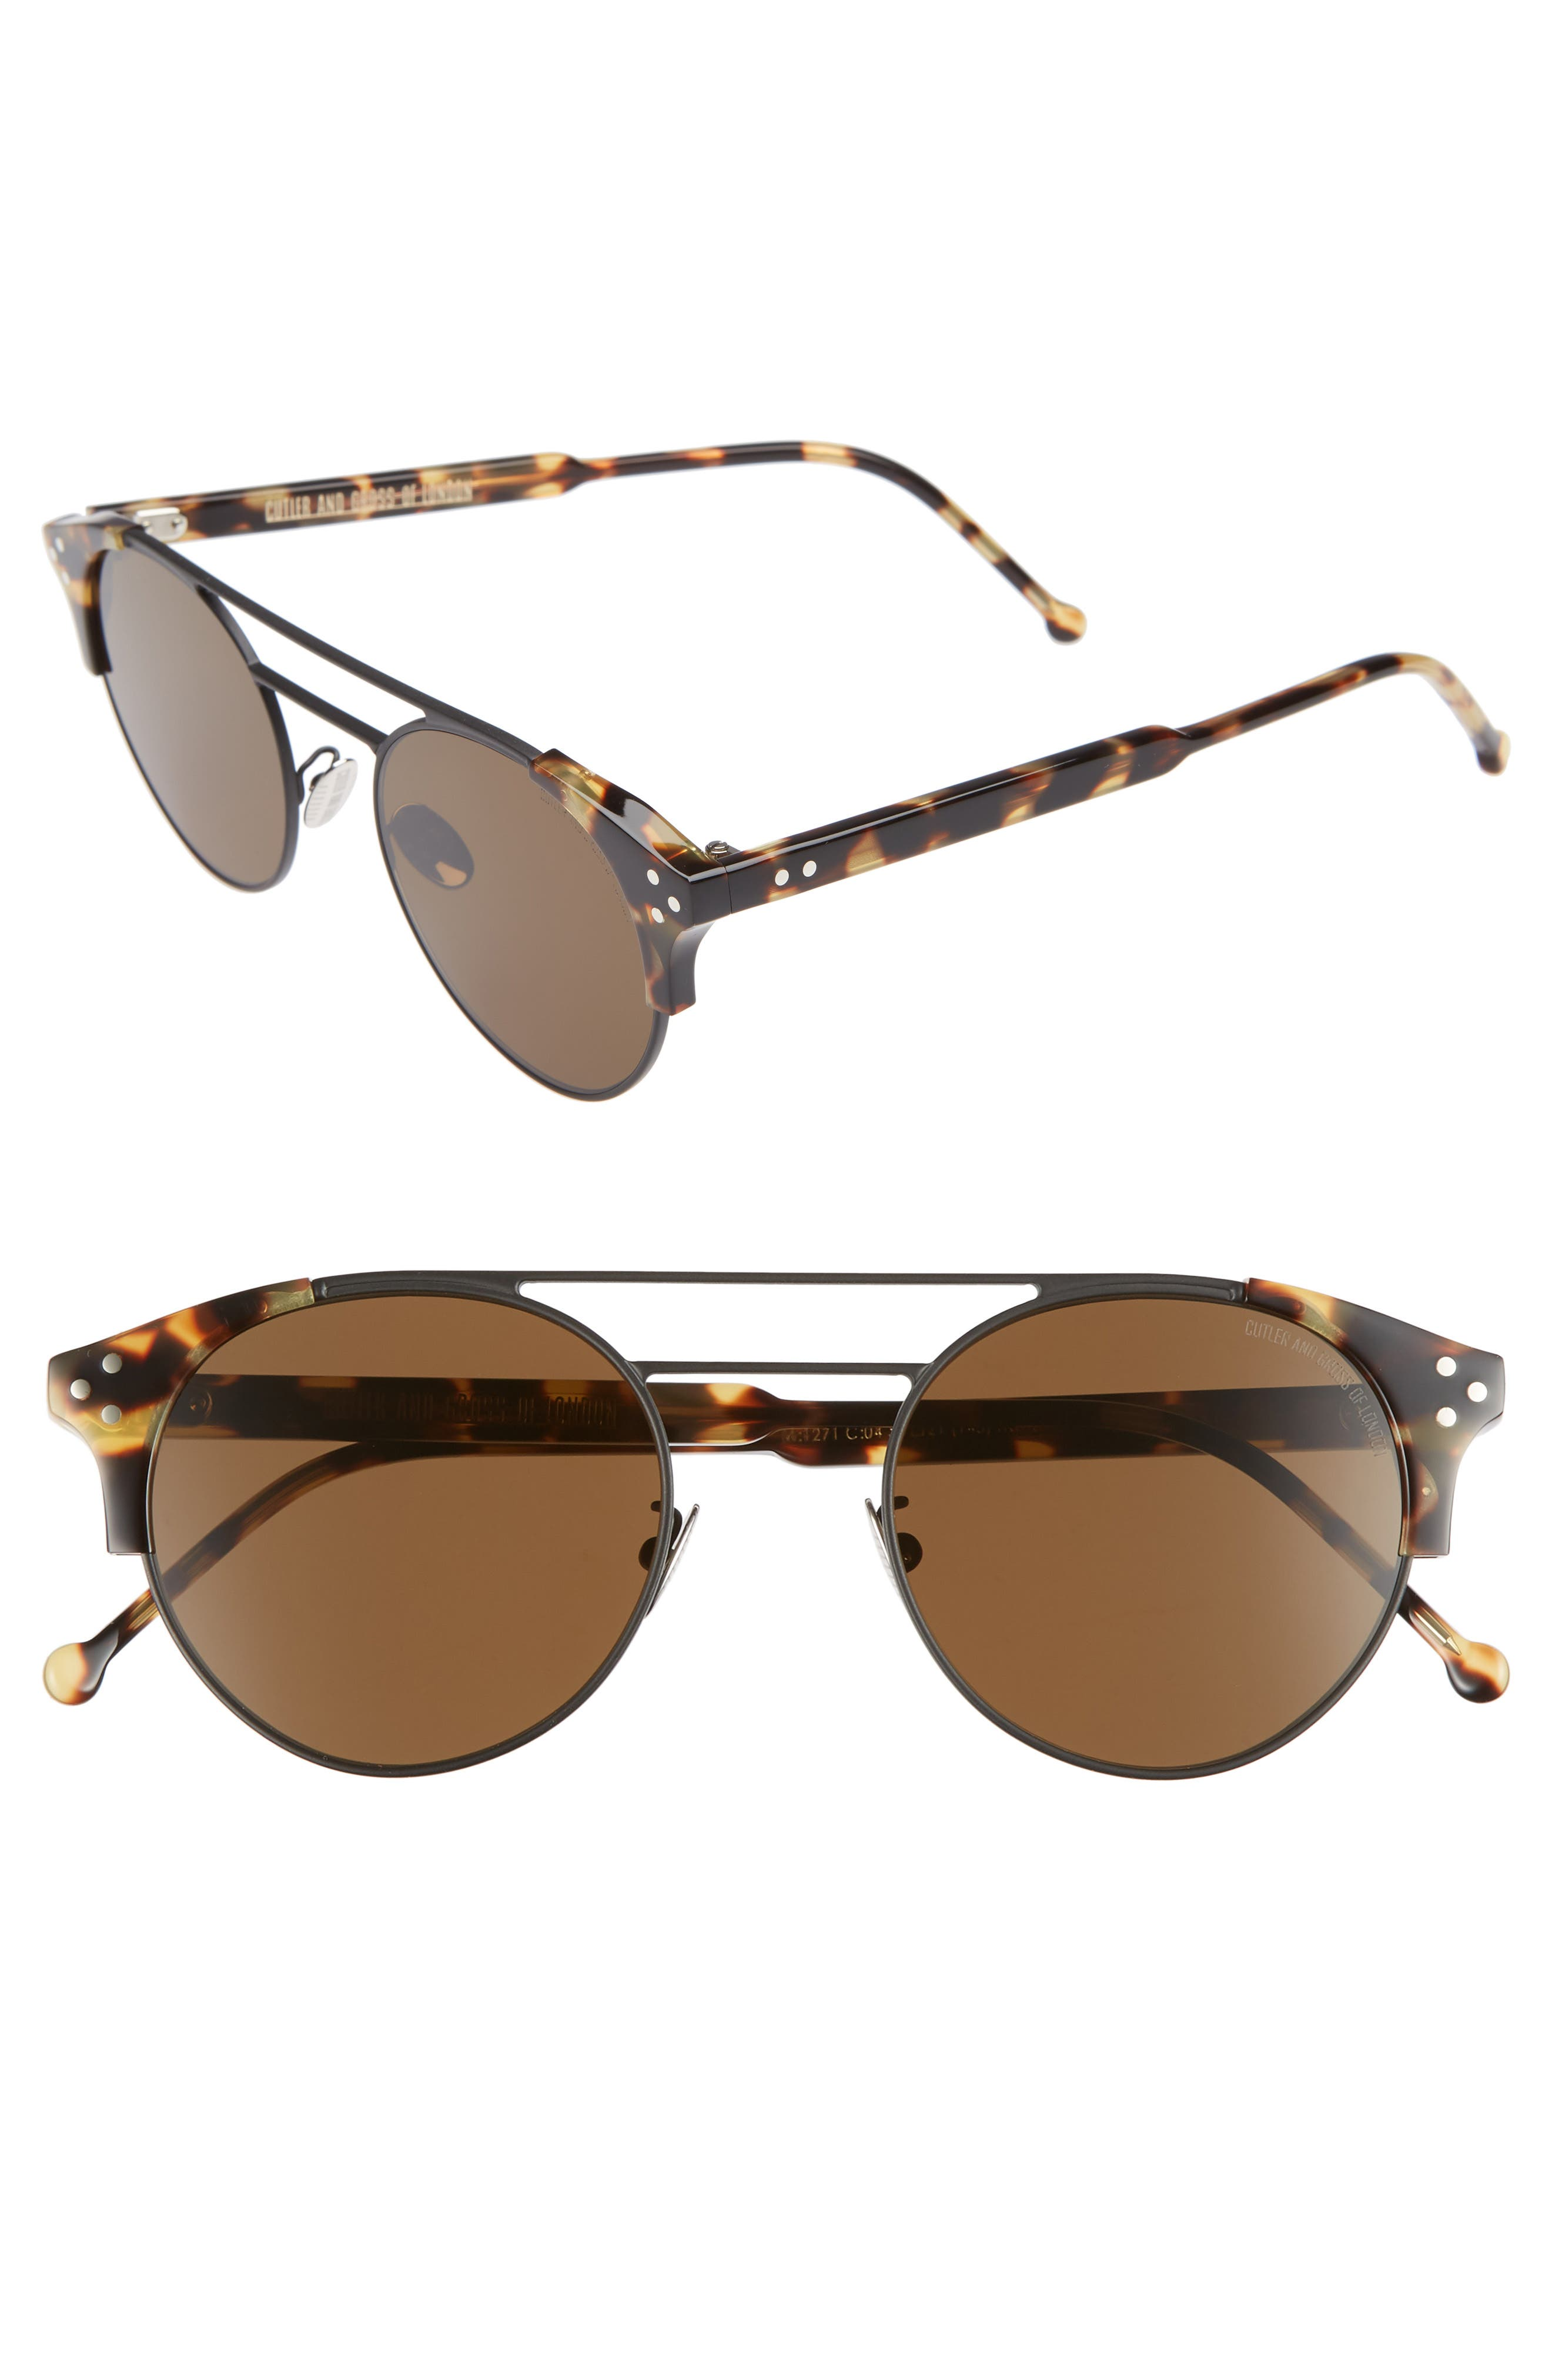 CUTLER AND GROSS, 50mm Polarized Round Sunglasses, Main thumbnail 1, color, BLACK AND CAMOUFLAGE/ BROWN